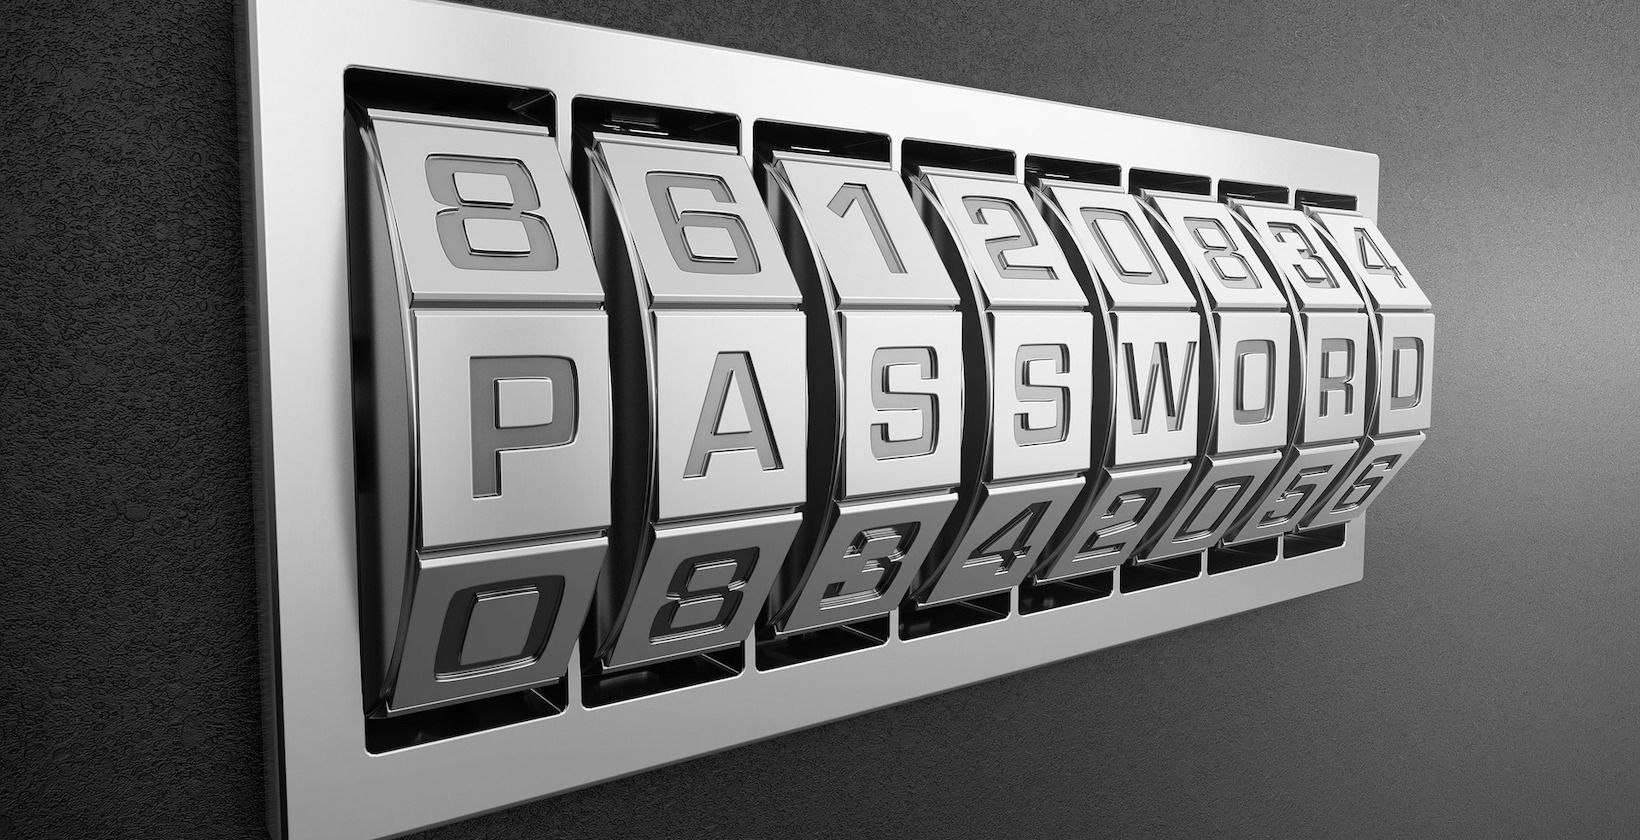 How to Save Passwords on Your iPhone